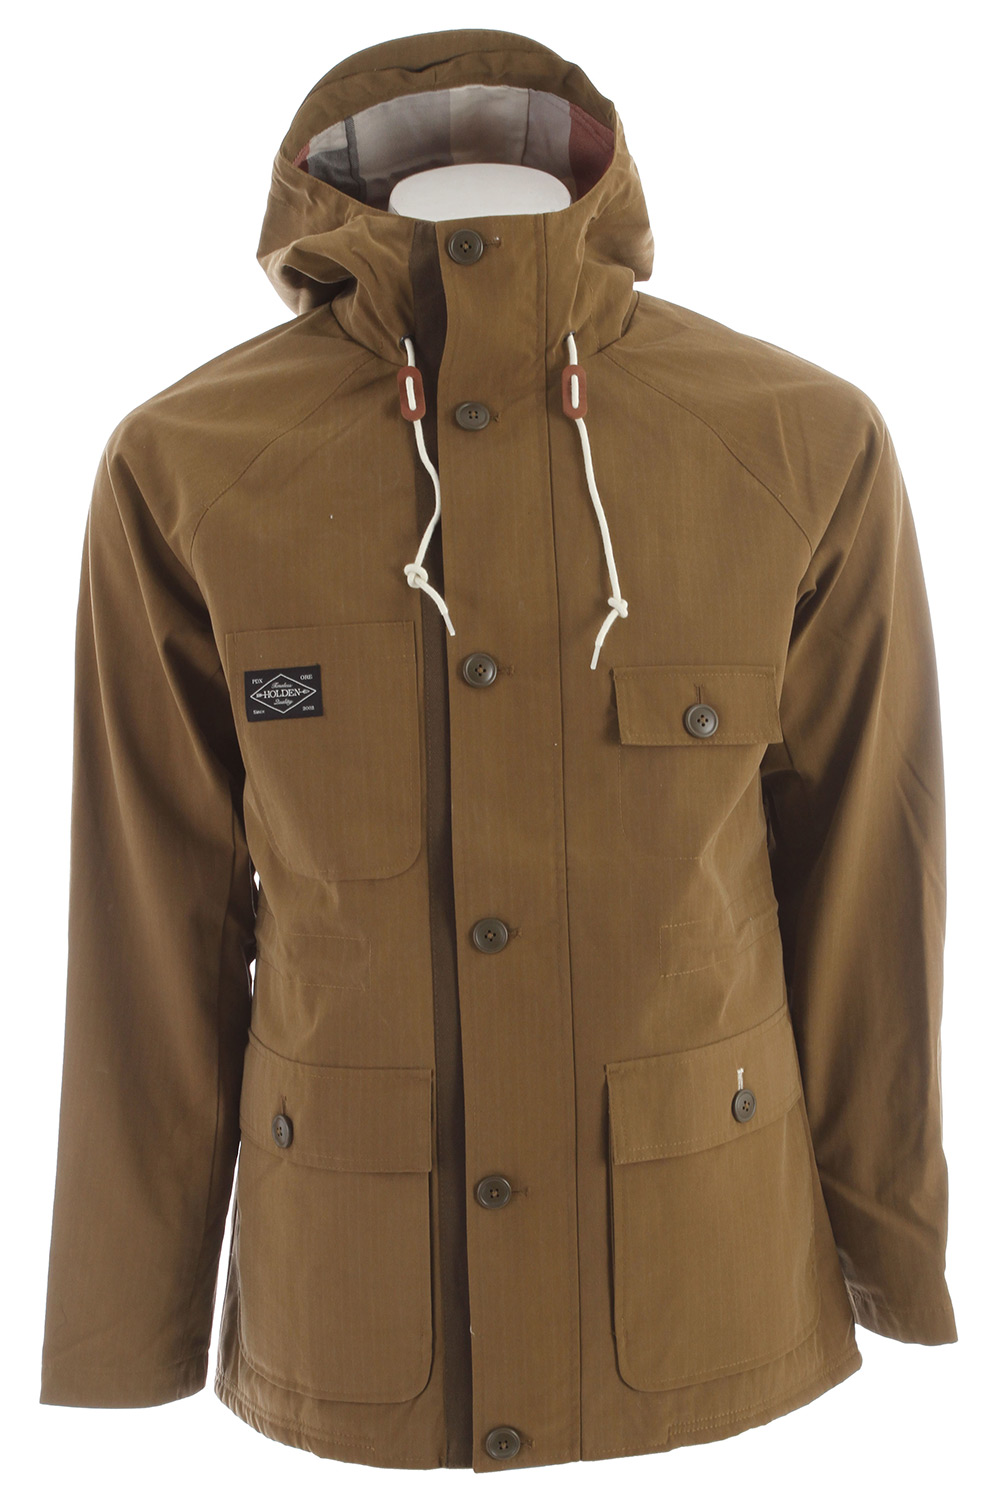 The Camden jacket is made with a DWR coated cotton twill fabric that's been garment-washed for a soft, broken-in look and feel. Sherpa lined interior and flannel in hood, genuine leather details.Key Features of the Holden Camden Jacket: Cotton Flannel Hood Lining Sherpa Body Lining Garment Washed DWR - $220.00